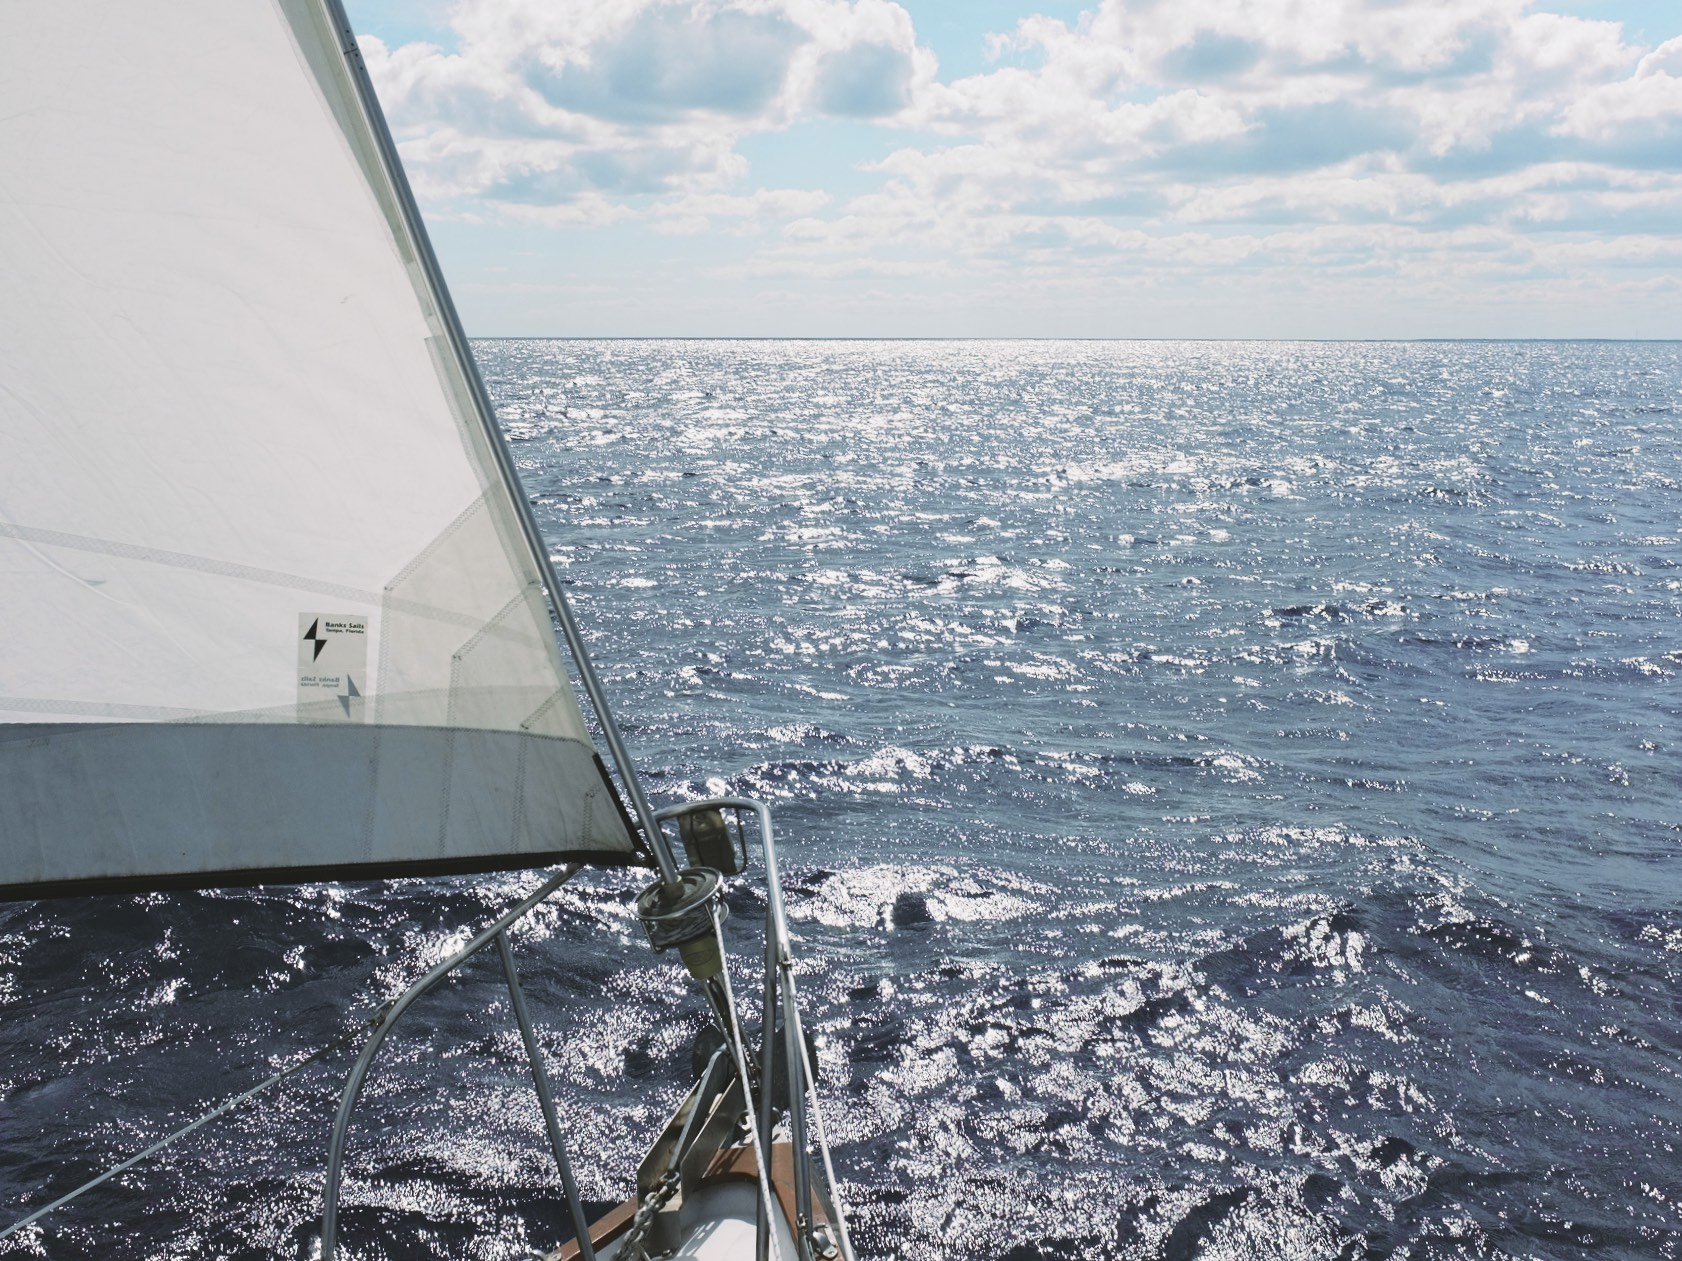 When not at sea on the 72' Yacht, Piratas de Tejas, my wife and I have our own sailboat we cruise the Caribbean with.